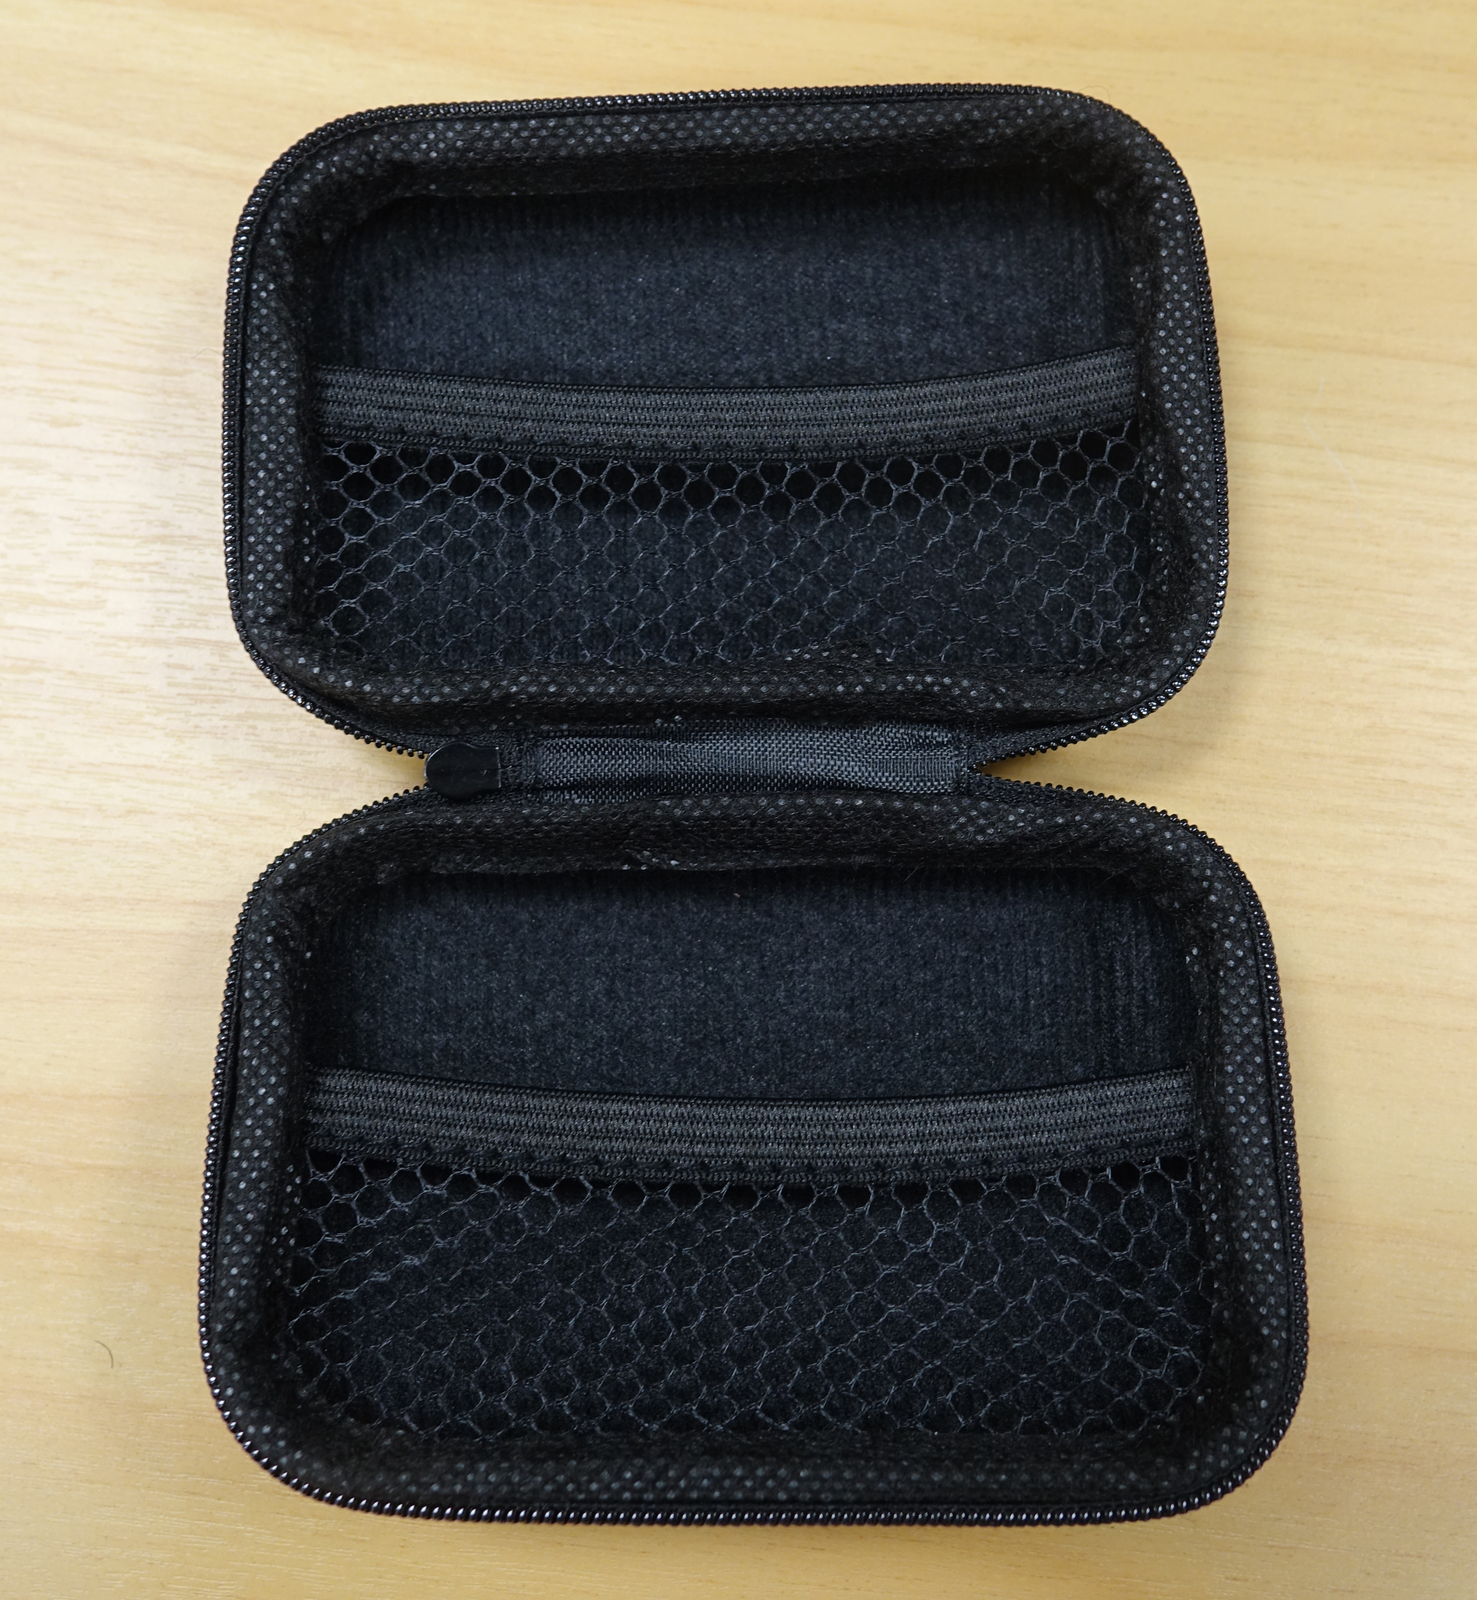 Mighty Ape Hard Shell Dice Case image